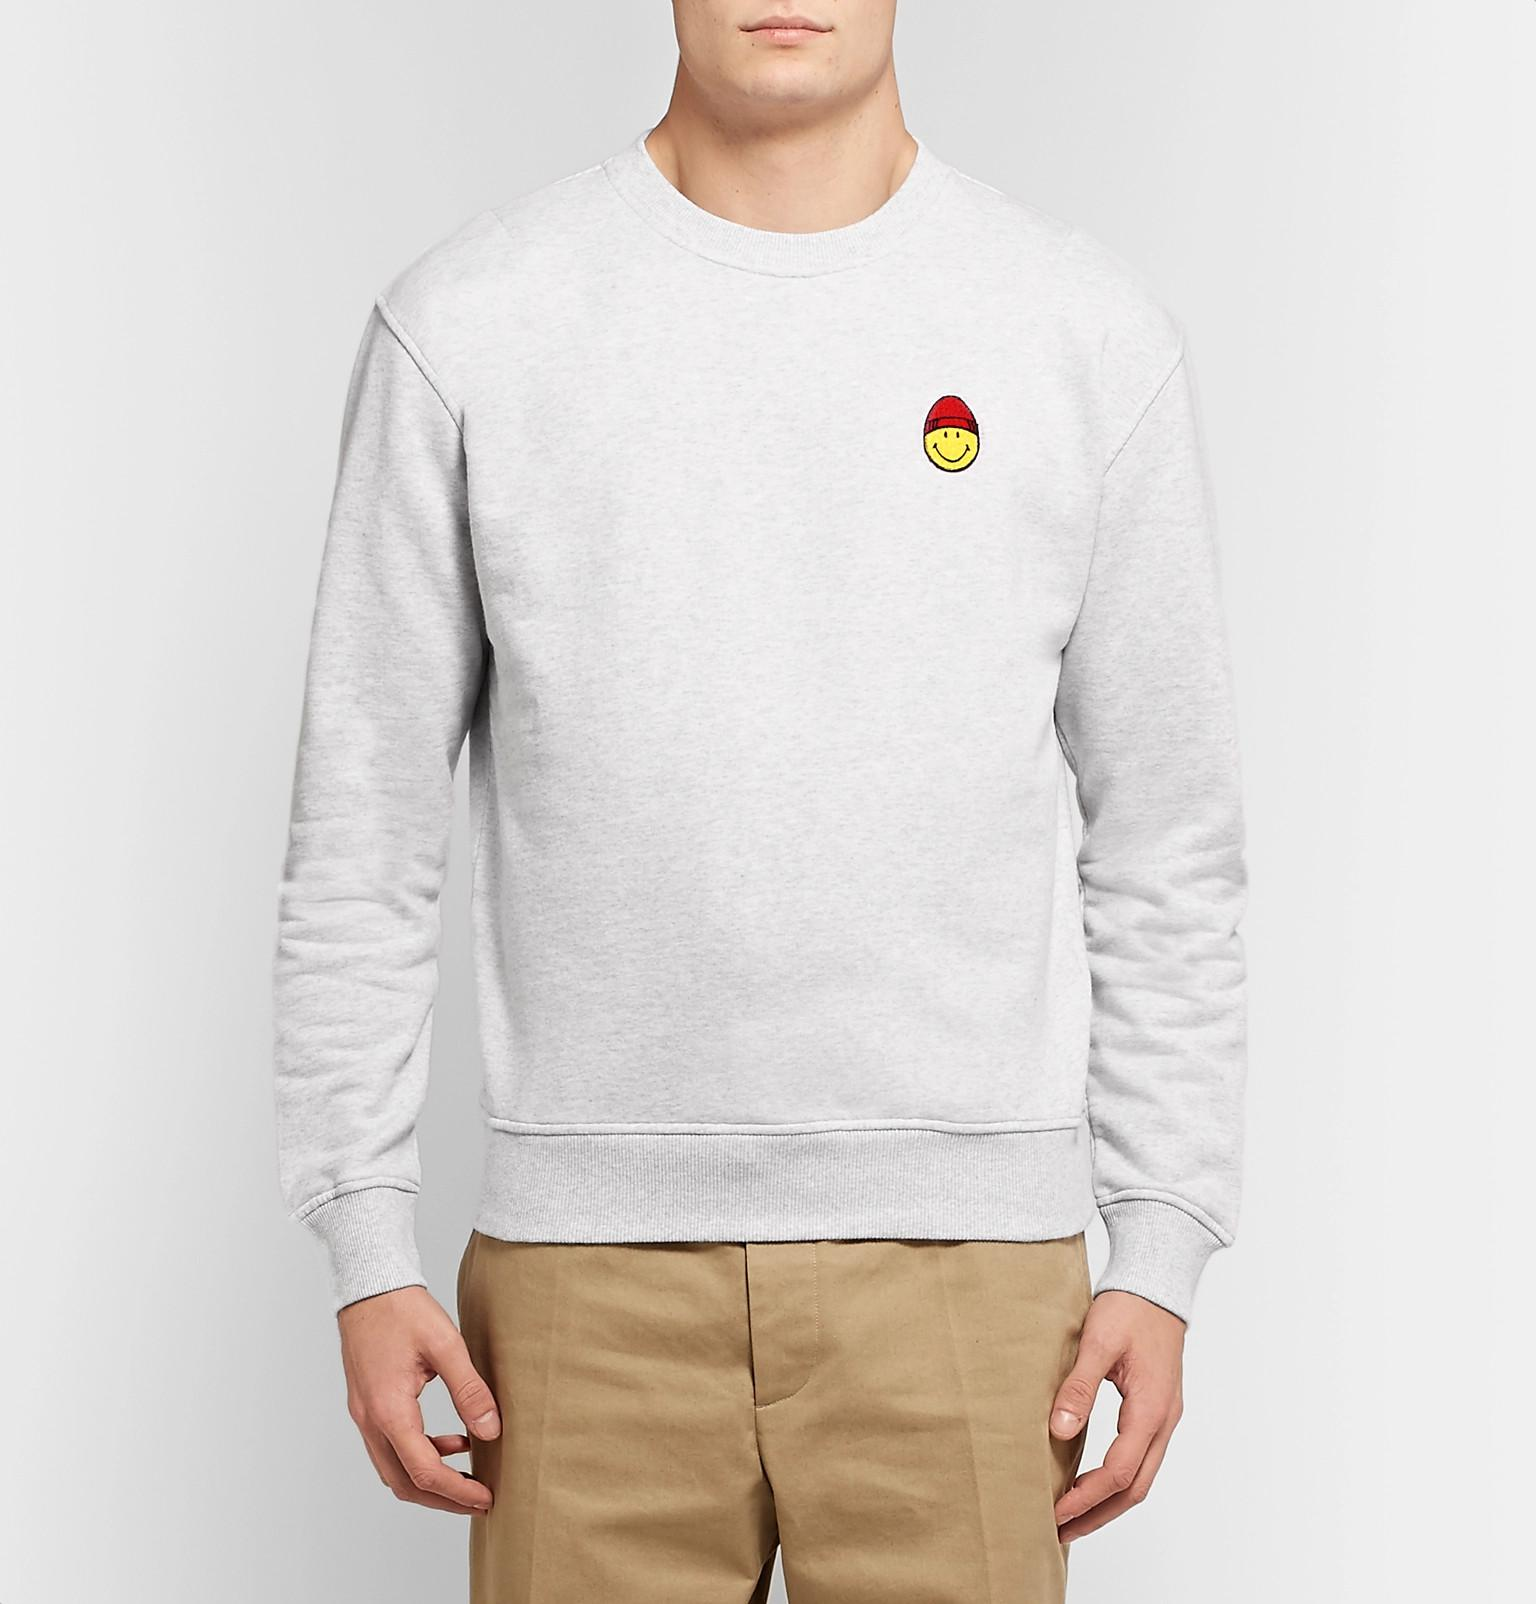 The Appliquéd Men Fullscreen Smiley Loopback Sweatshirt Mélange Ami BvqBwRFx